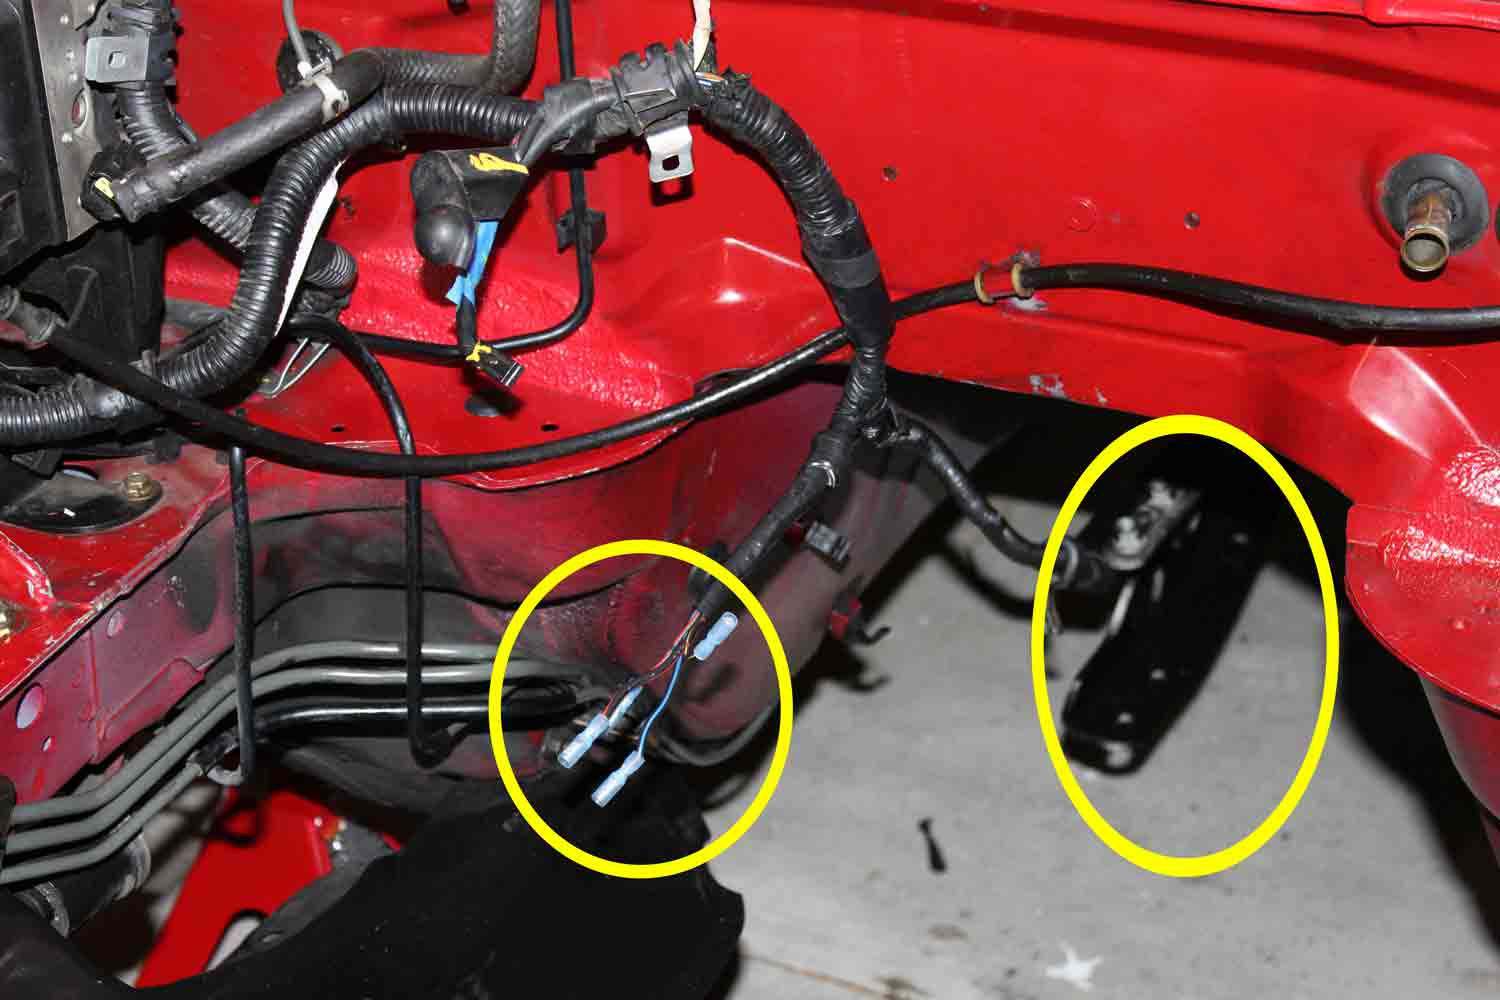 miata community wiki automatic to manual conversion four wires isolated and wire harness rewrapped you can make out the end of the ppf in the image